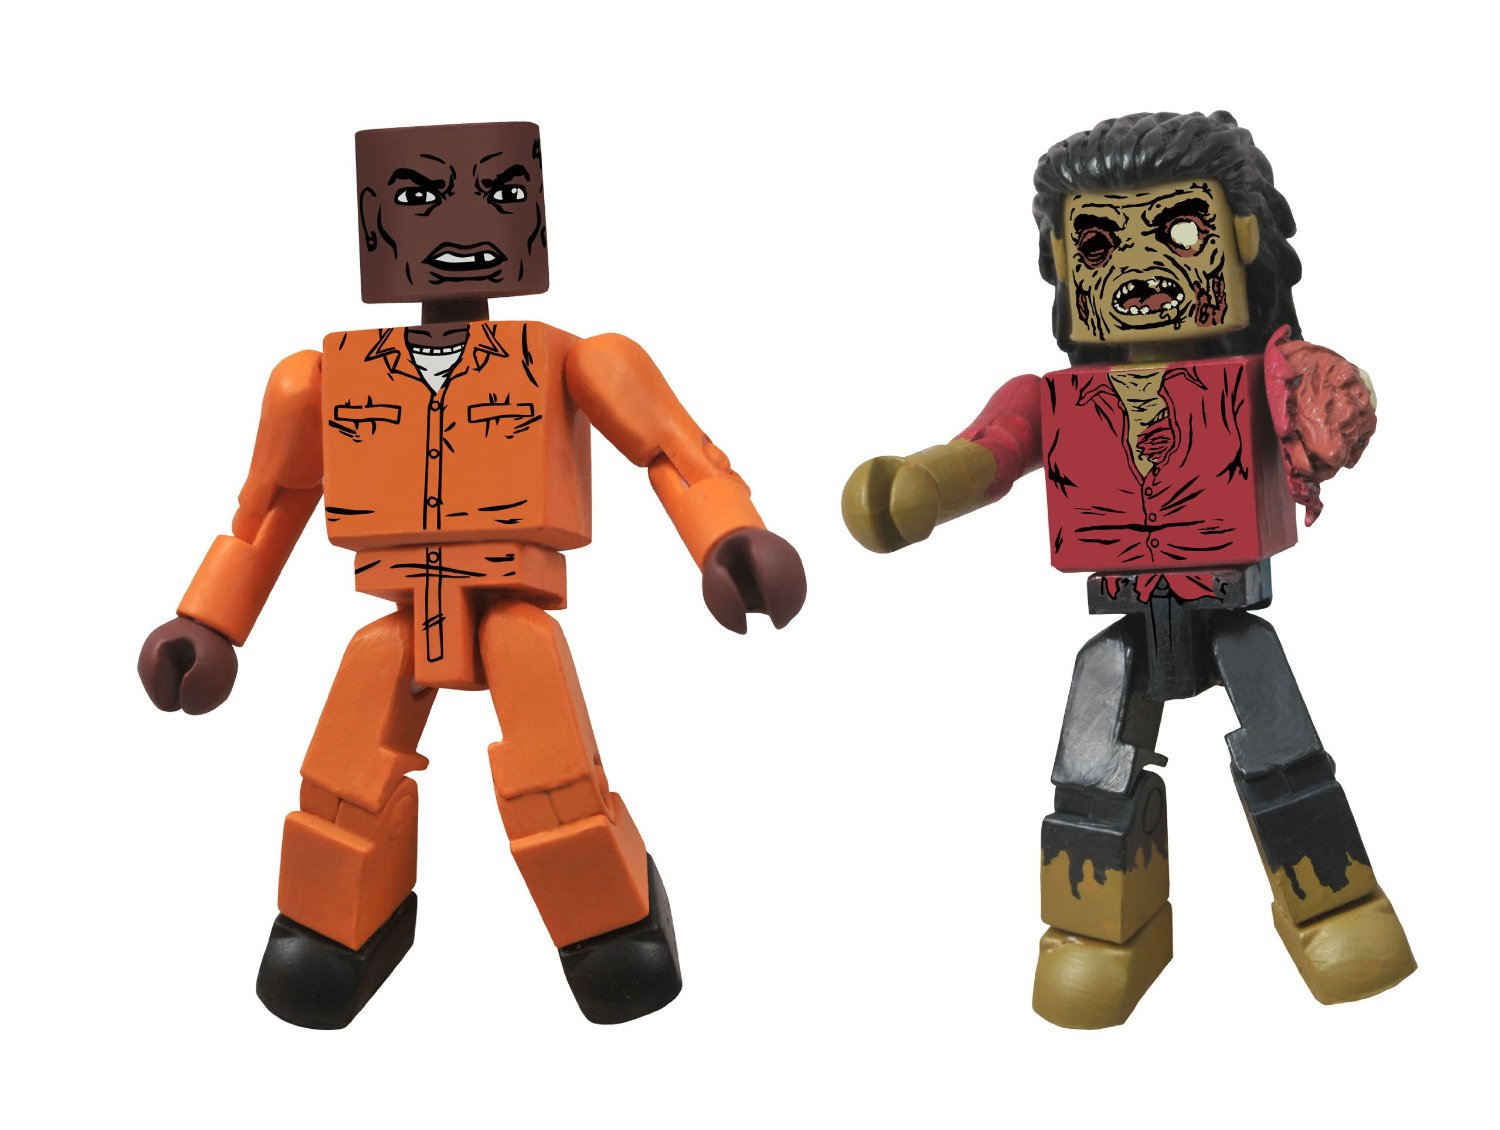 Walking Dead Minimates Dexter and Dreadlock Zombie